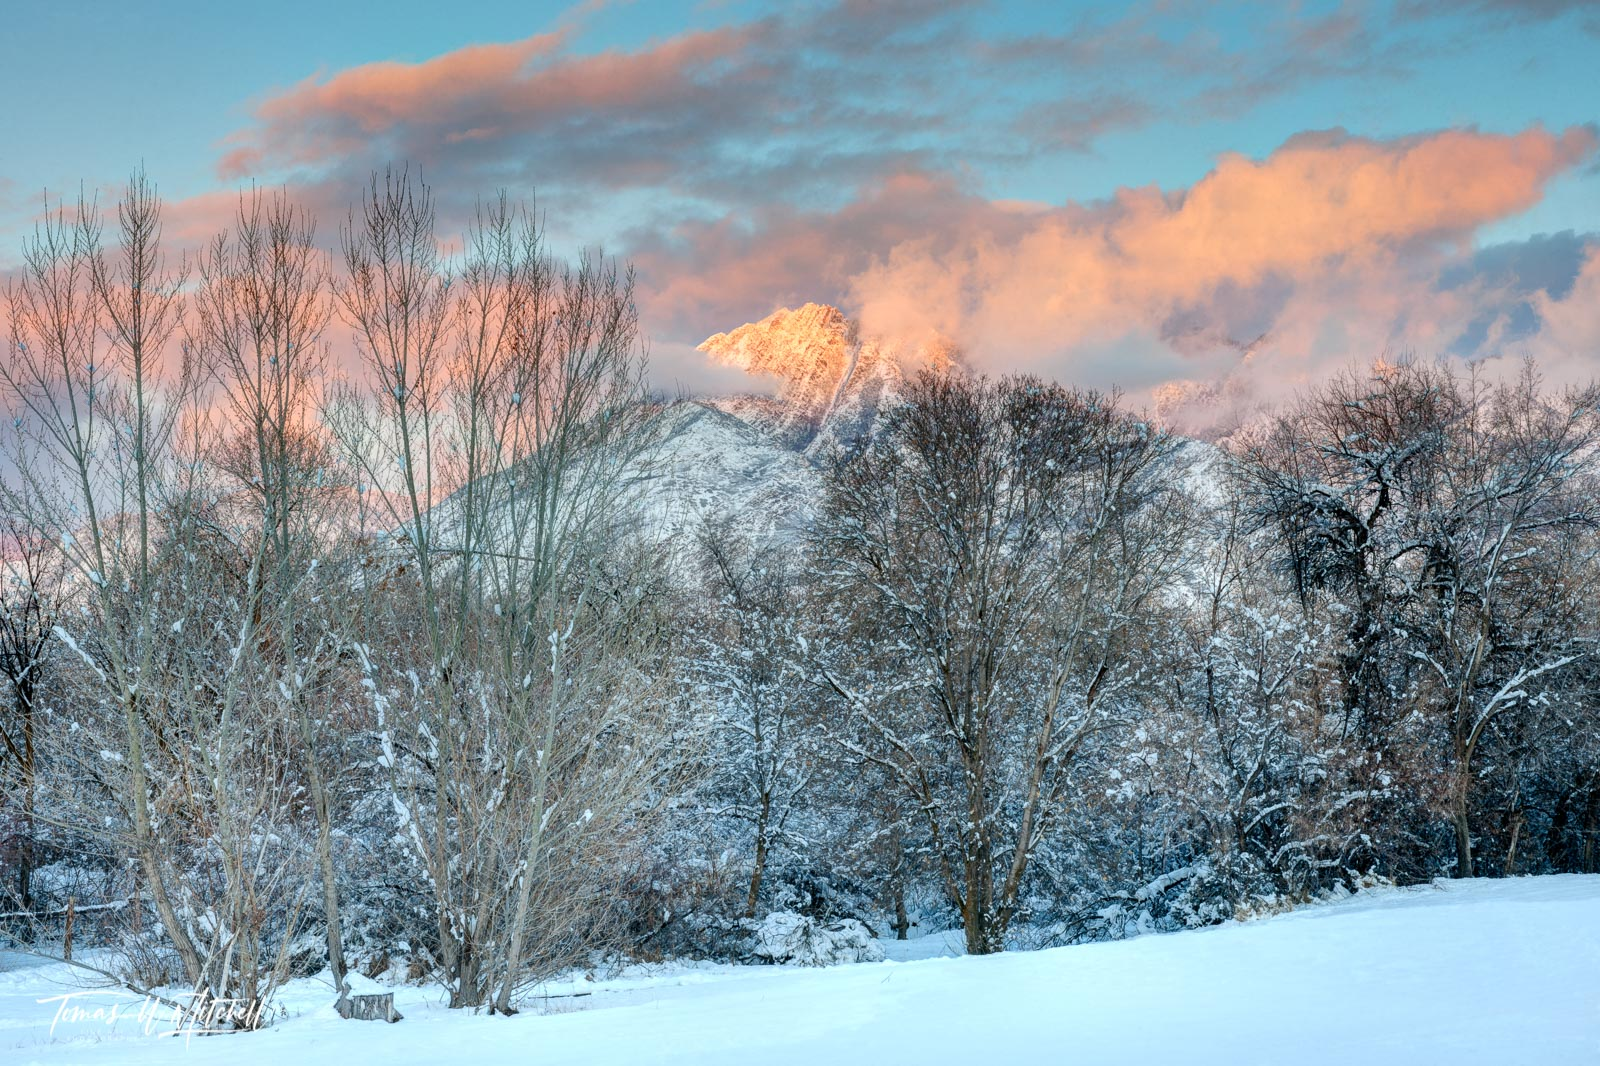 Limited Edition of 100 Museum Grade, Fine Art Prints. January 21, 2018. I had been waiting months for a decent snowfall, it finally...